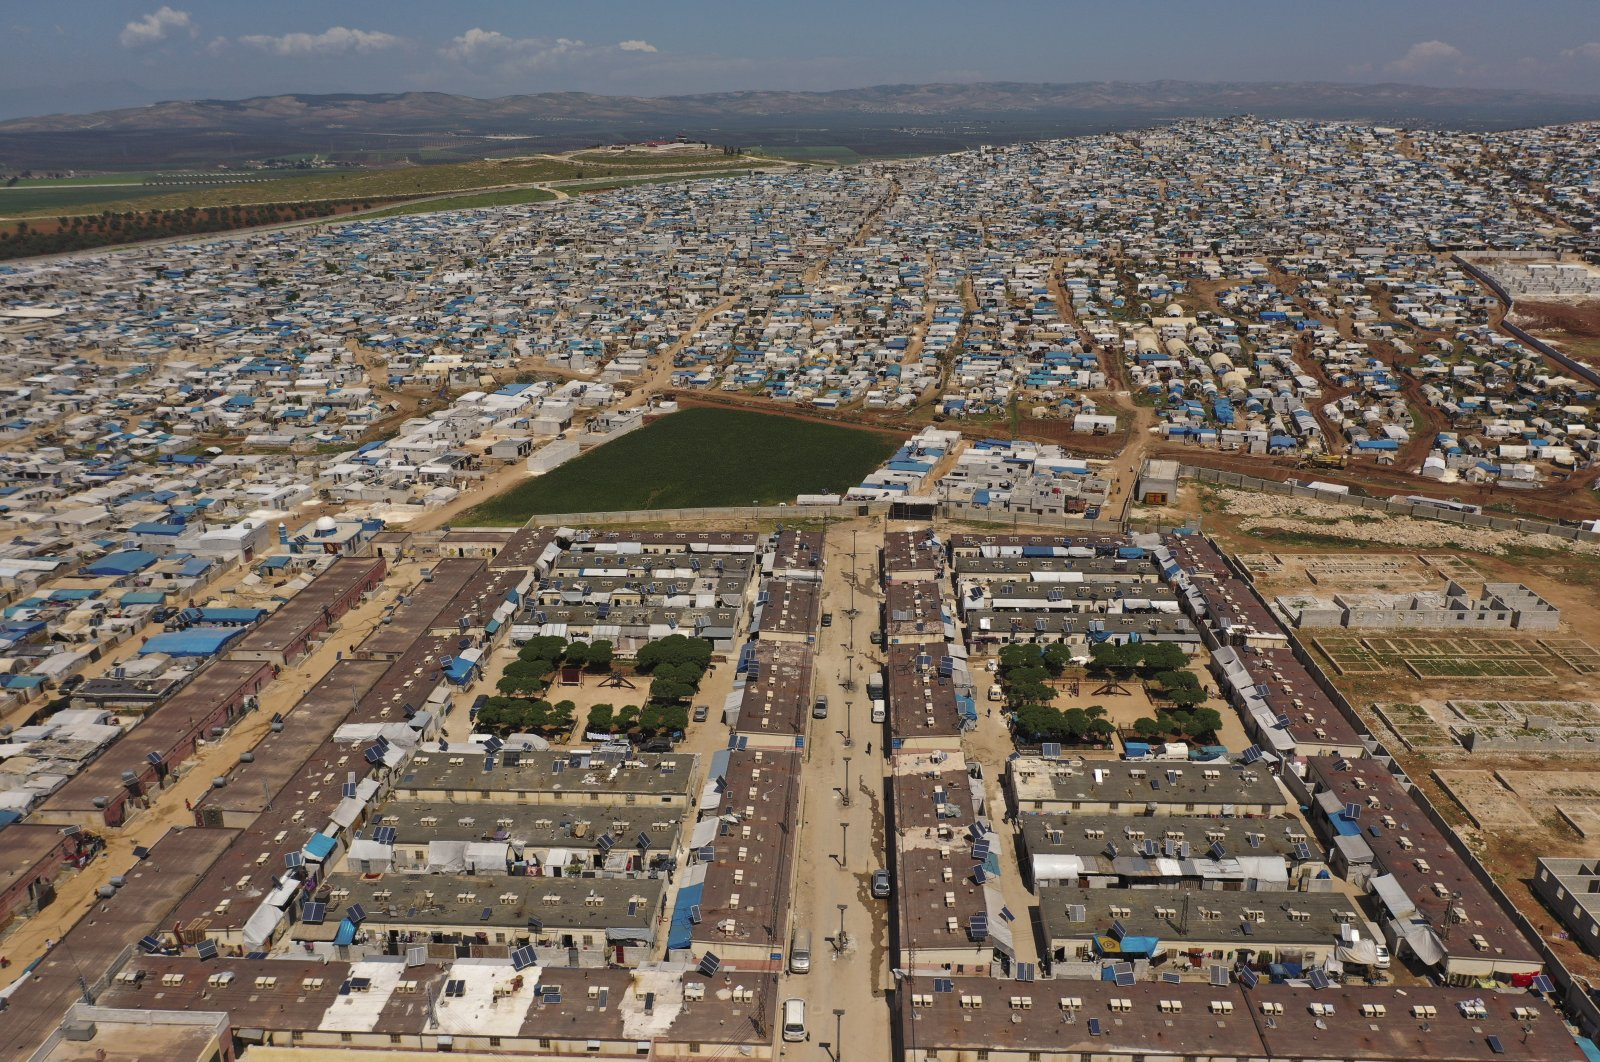 A large refugee camp on the Syrian side of the border with Turkey, near the town of Atma, in Idlib province, Syria, April 19, 2020. (AP File Photo)